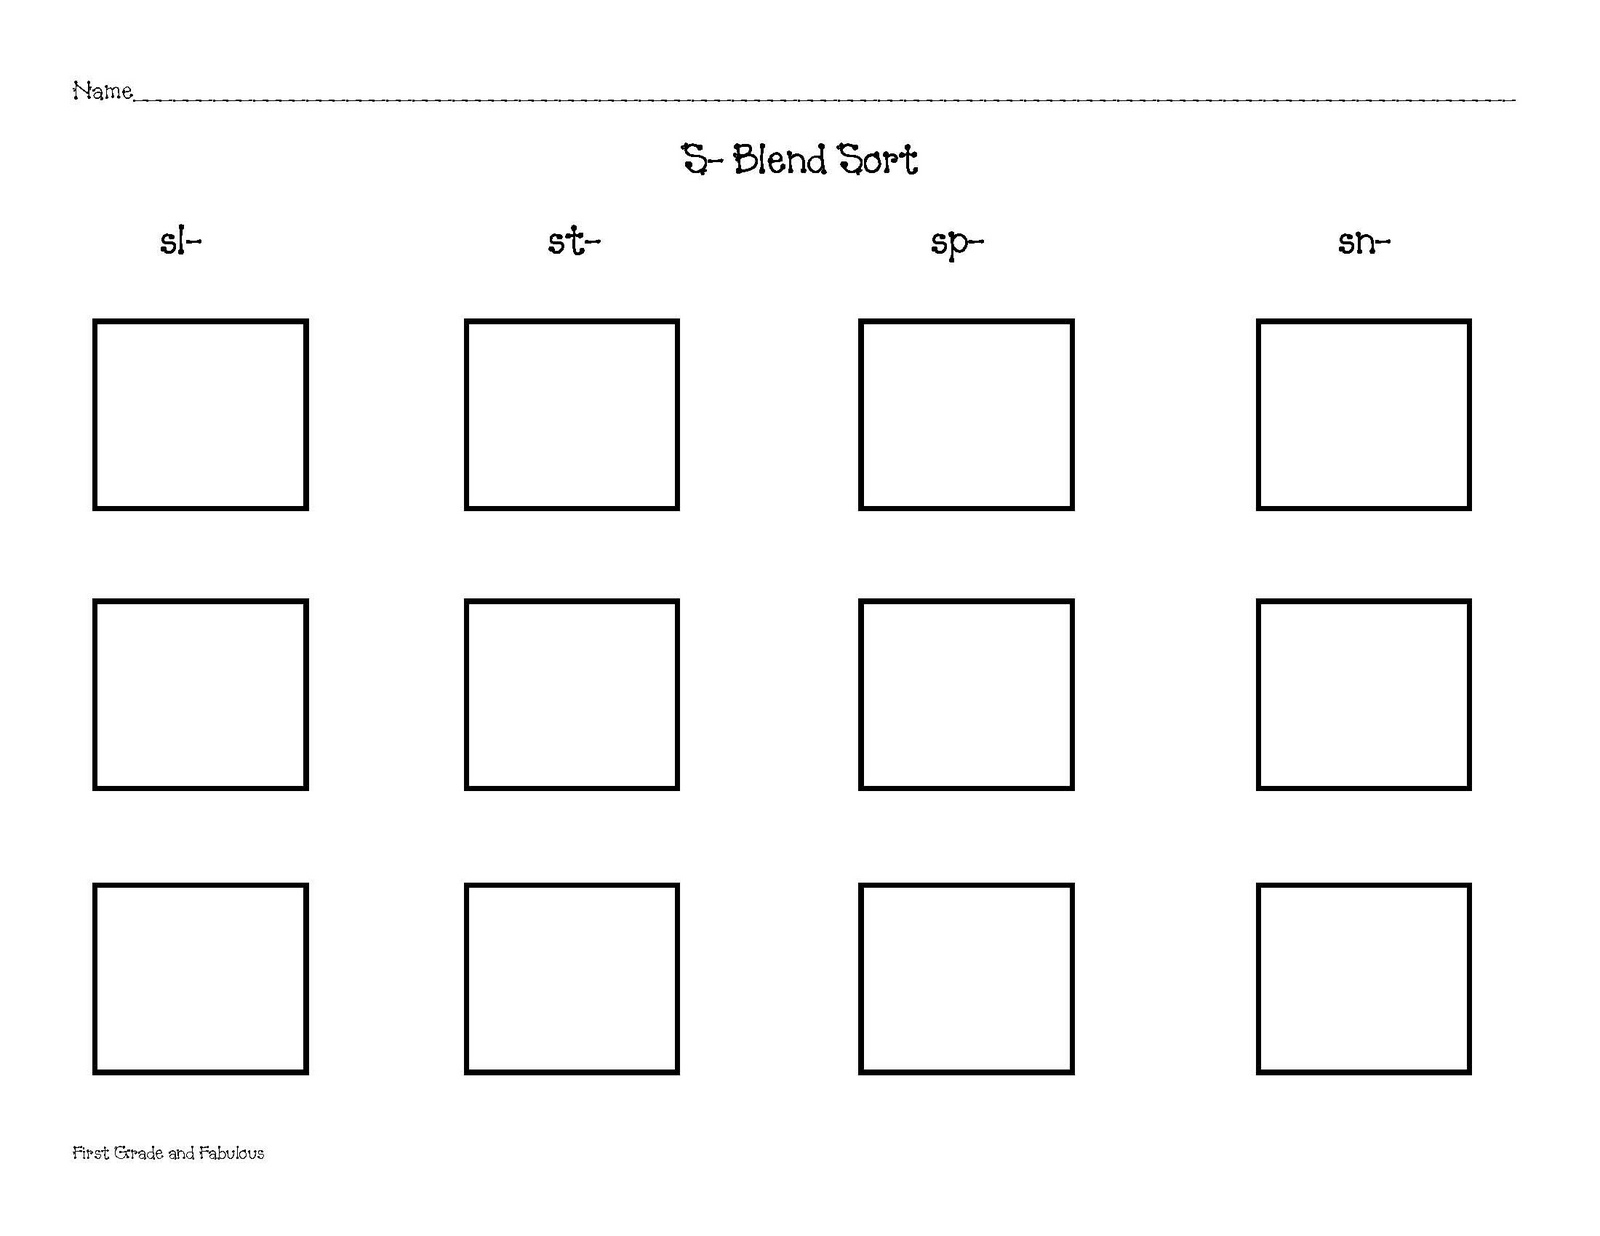 First Grade And Fabulous Just A Sort Sheet